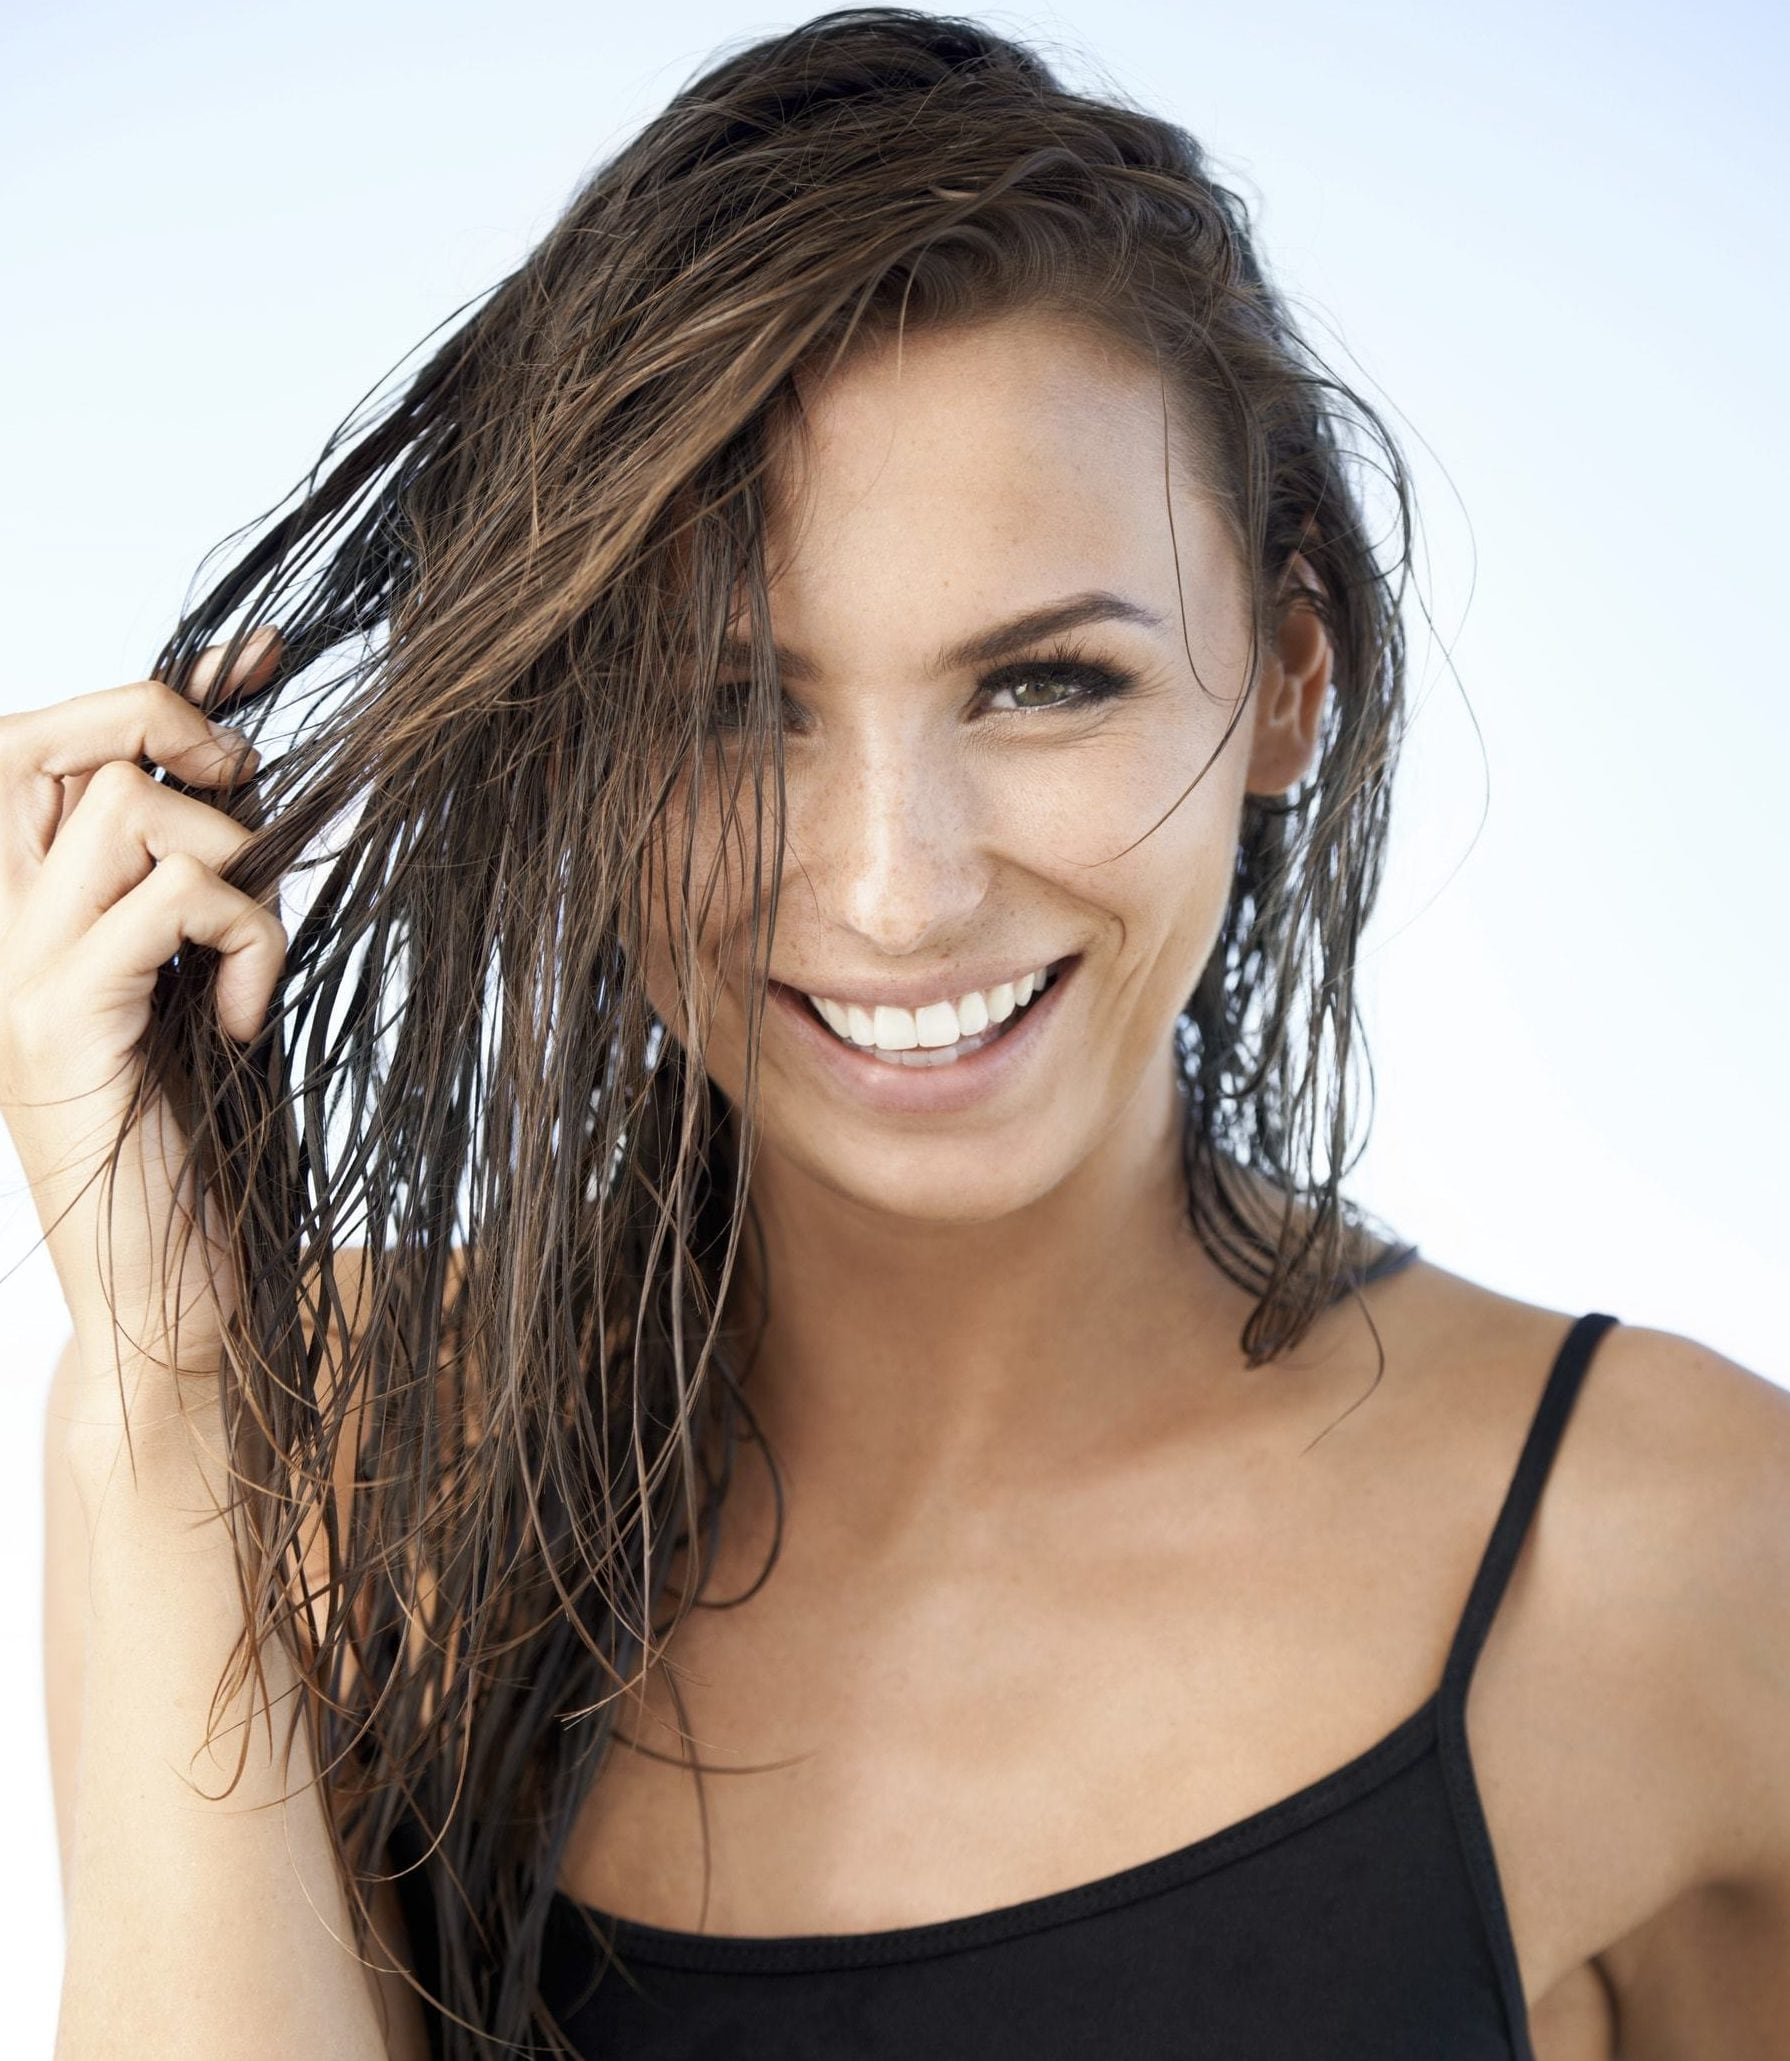 brunette model with damp hair running hands through the side